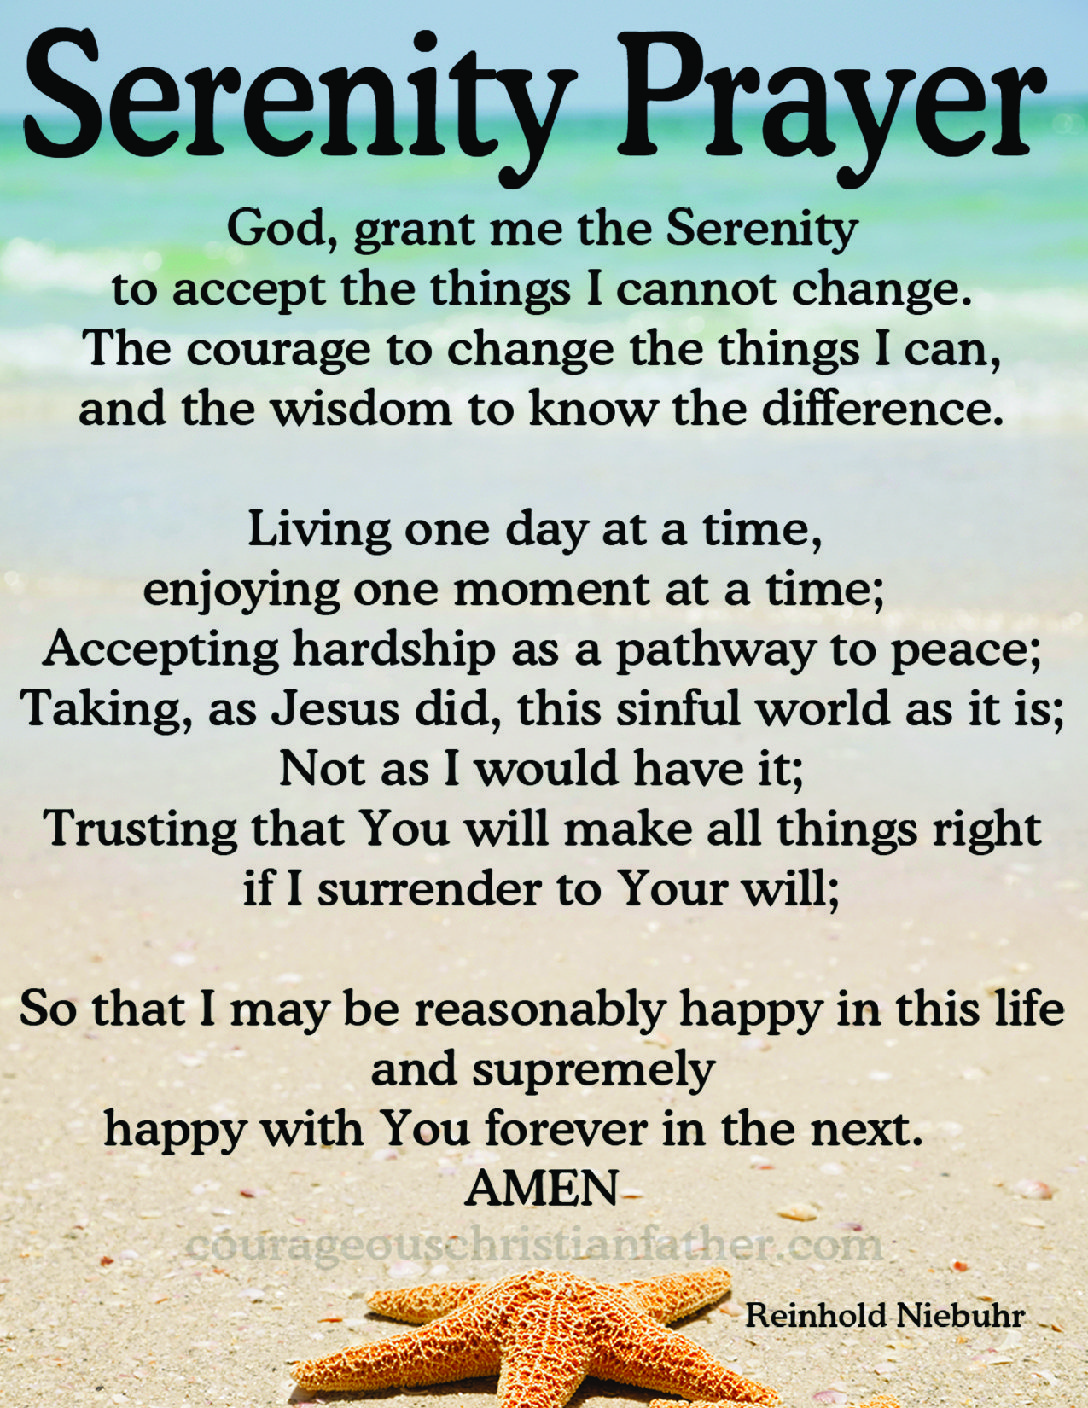 image regarding Serenity Prayer Printable named Serenity Prayer Brave Christian Dad